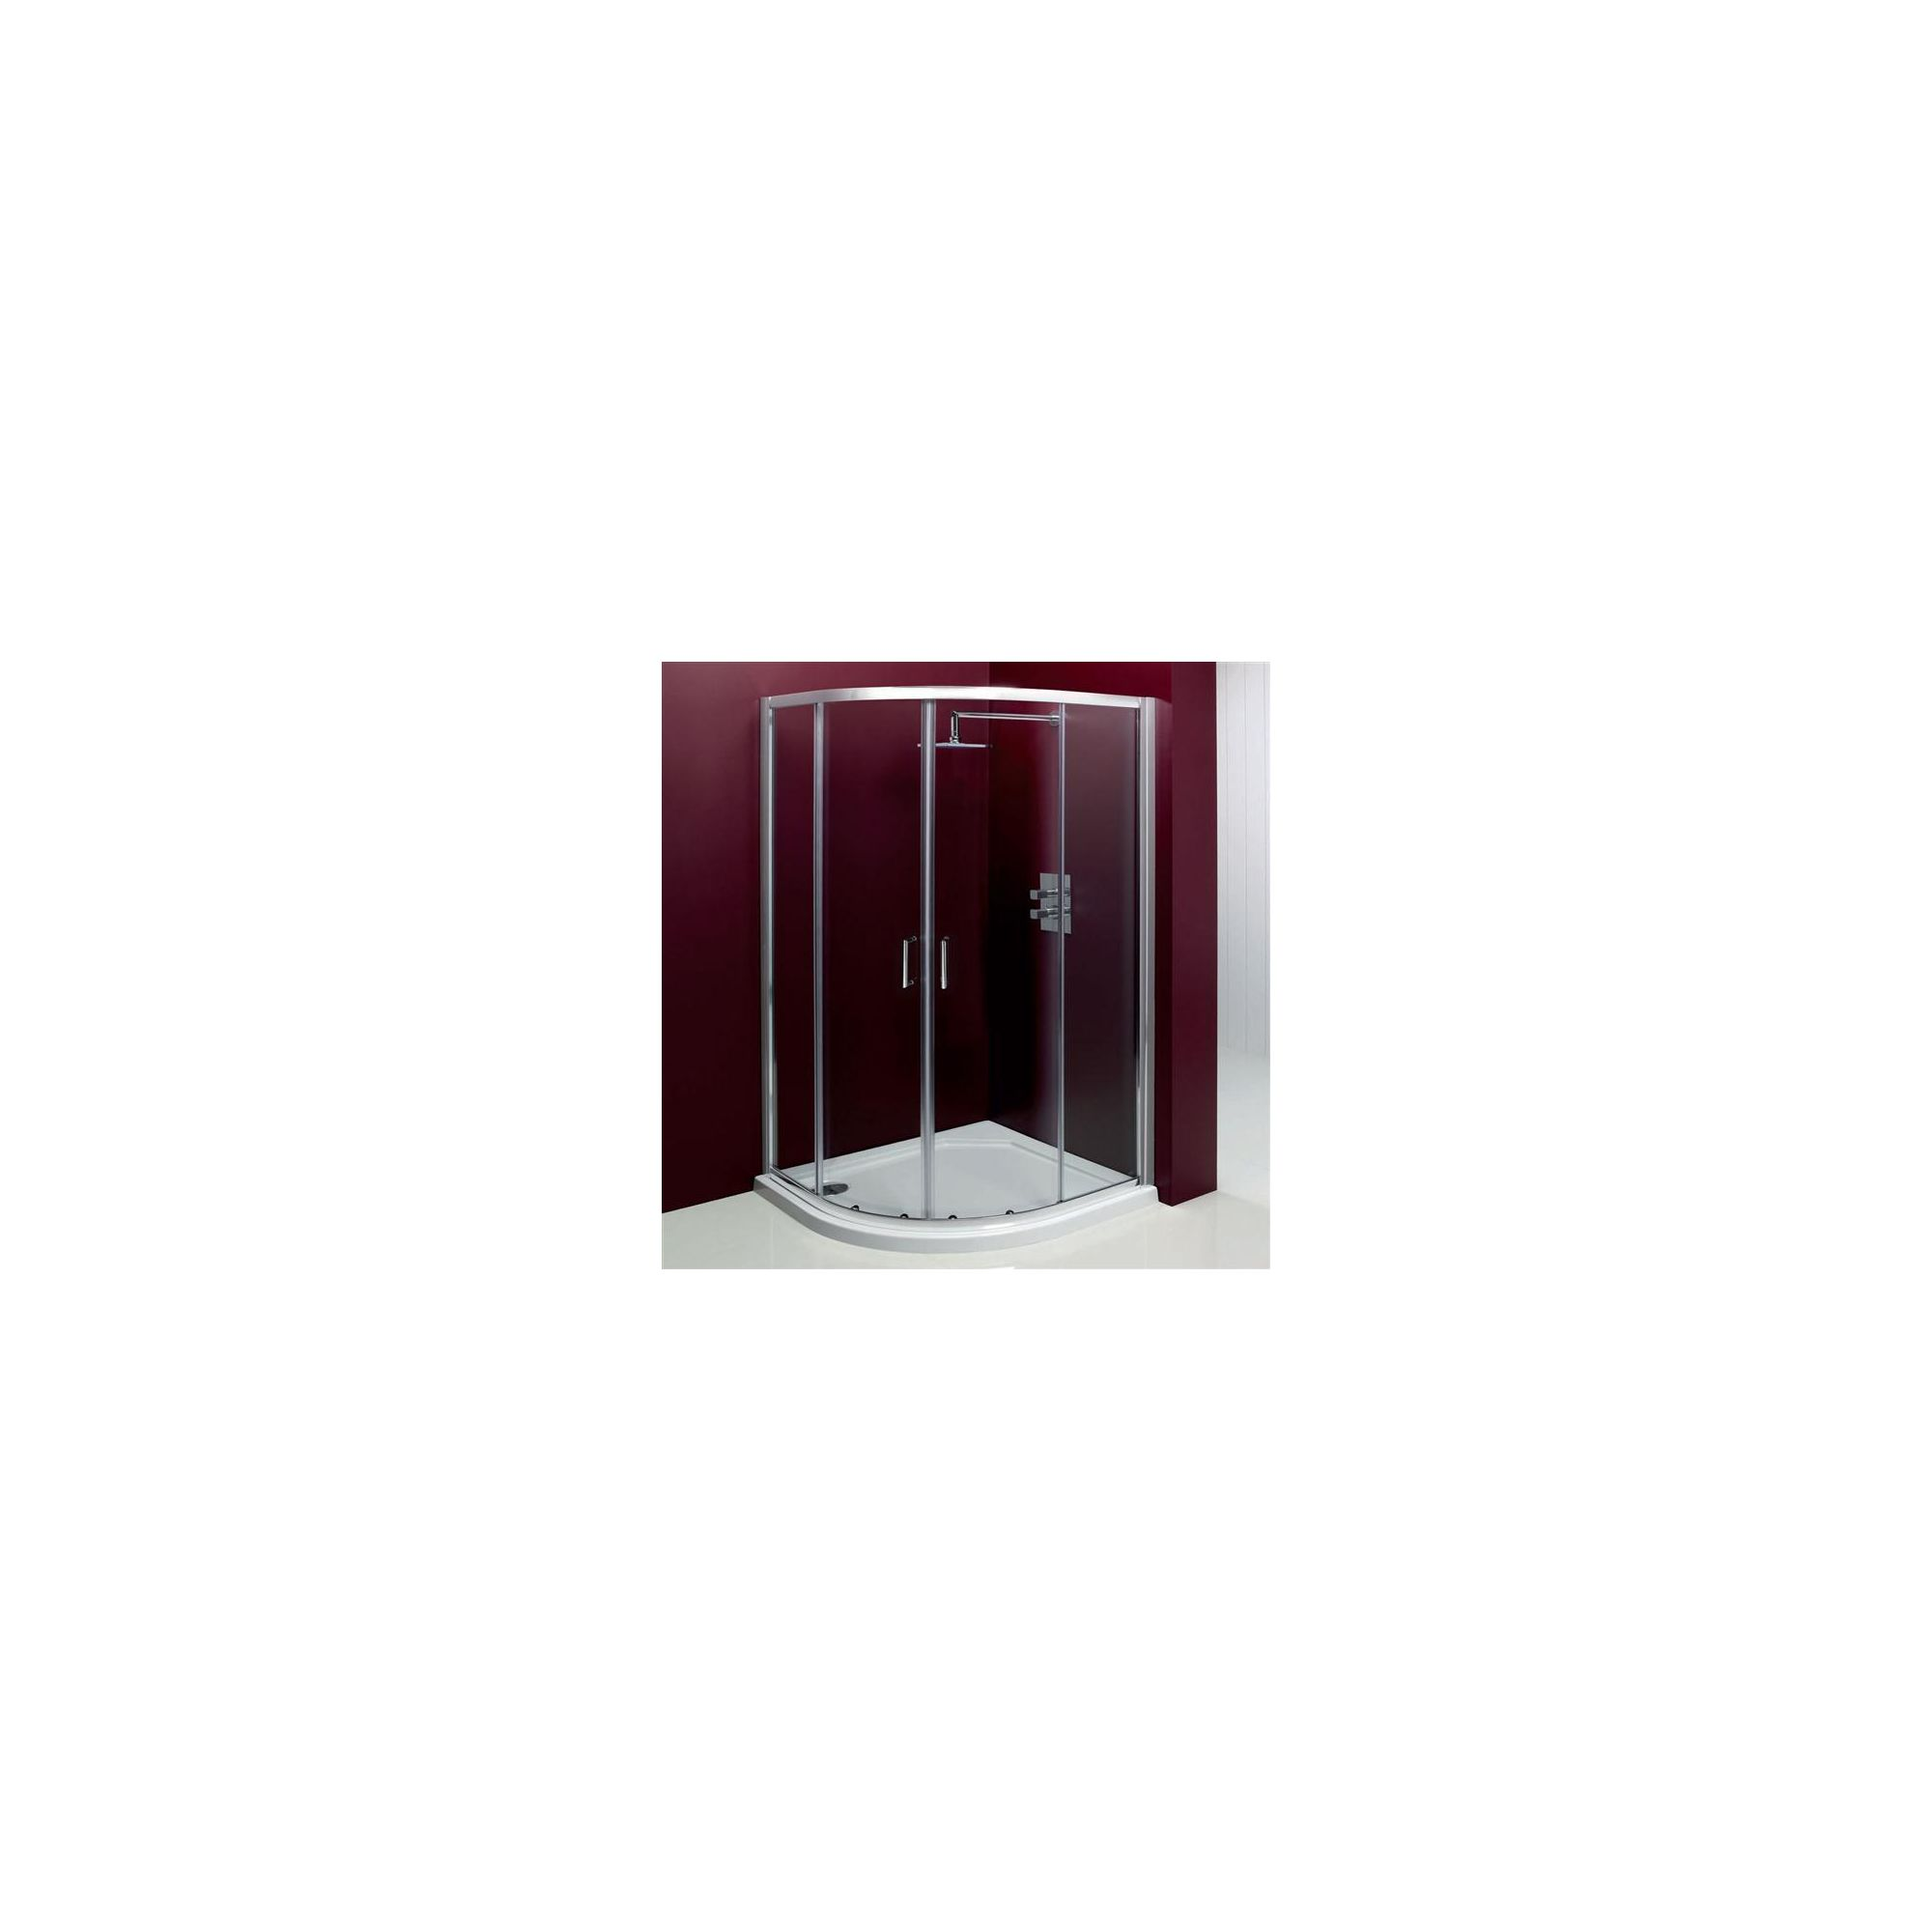 Merlyn Vivid Entree Quadrant Shower Enclosure, 900mm x 900mm, Low Profile Tray, 6mm Glass at Tesco Direct